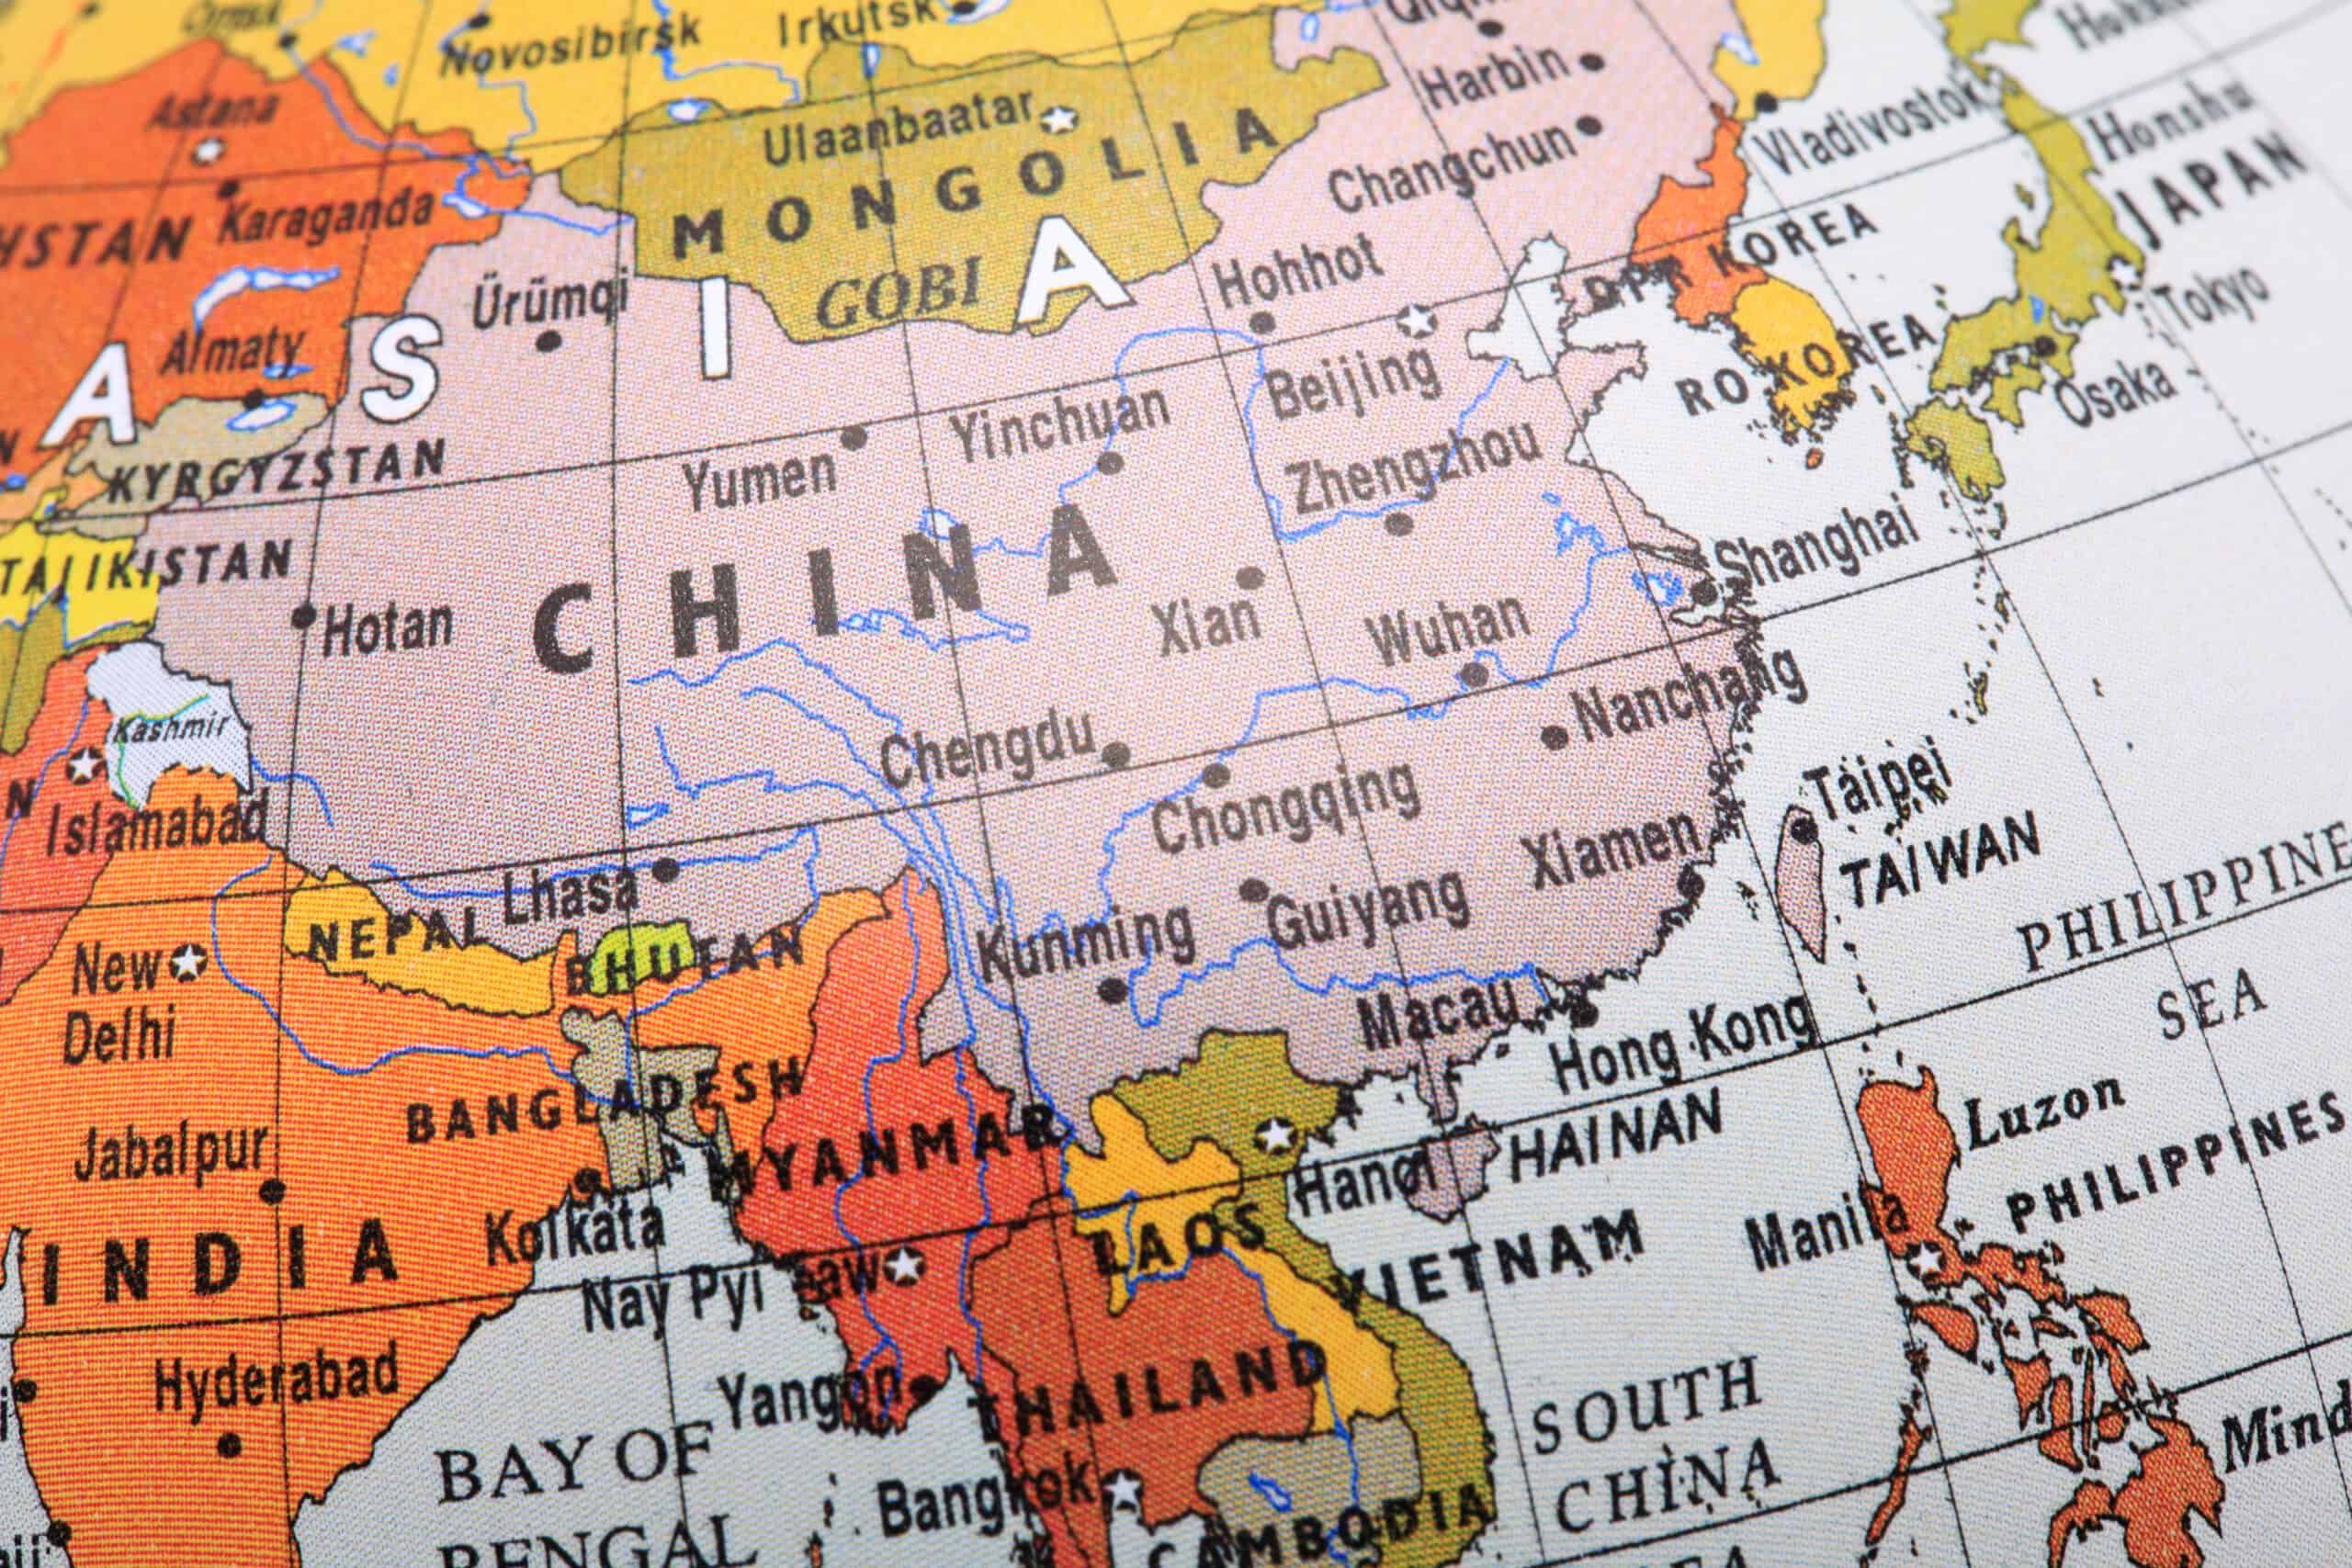 Image of a globe focusing on Southeast Asia, specifically China, the home of Chinese sellers